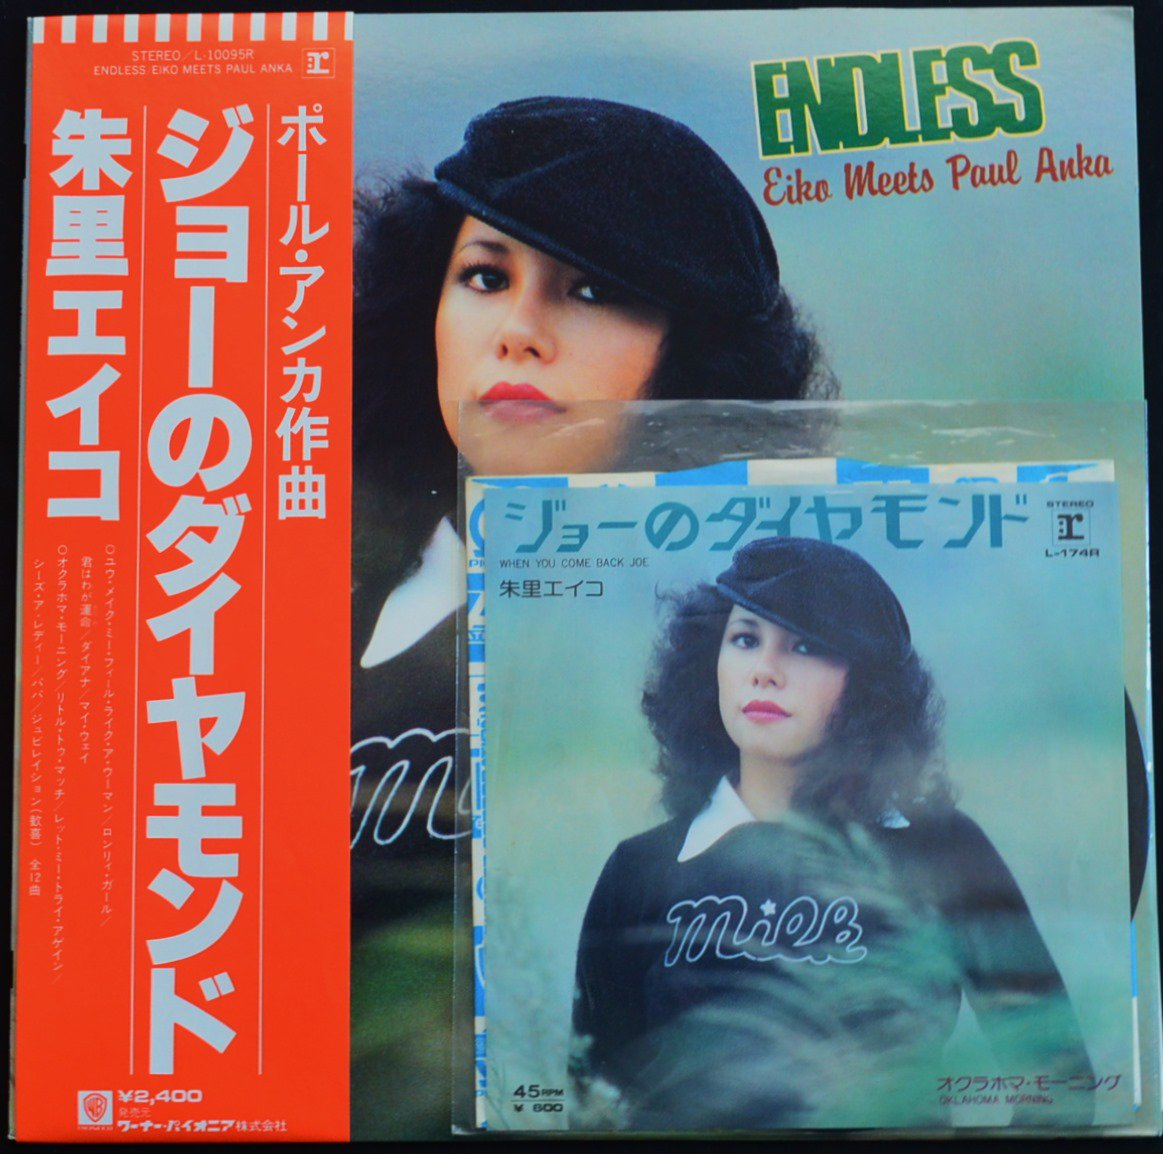 朱里エイコ EIKO SHURI / ENDLESS-EIKO MEETS PAUL ANKA / ジョーのダイヤモンド WHEN YOU COME BACK JOE (LP+7